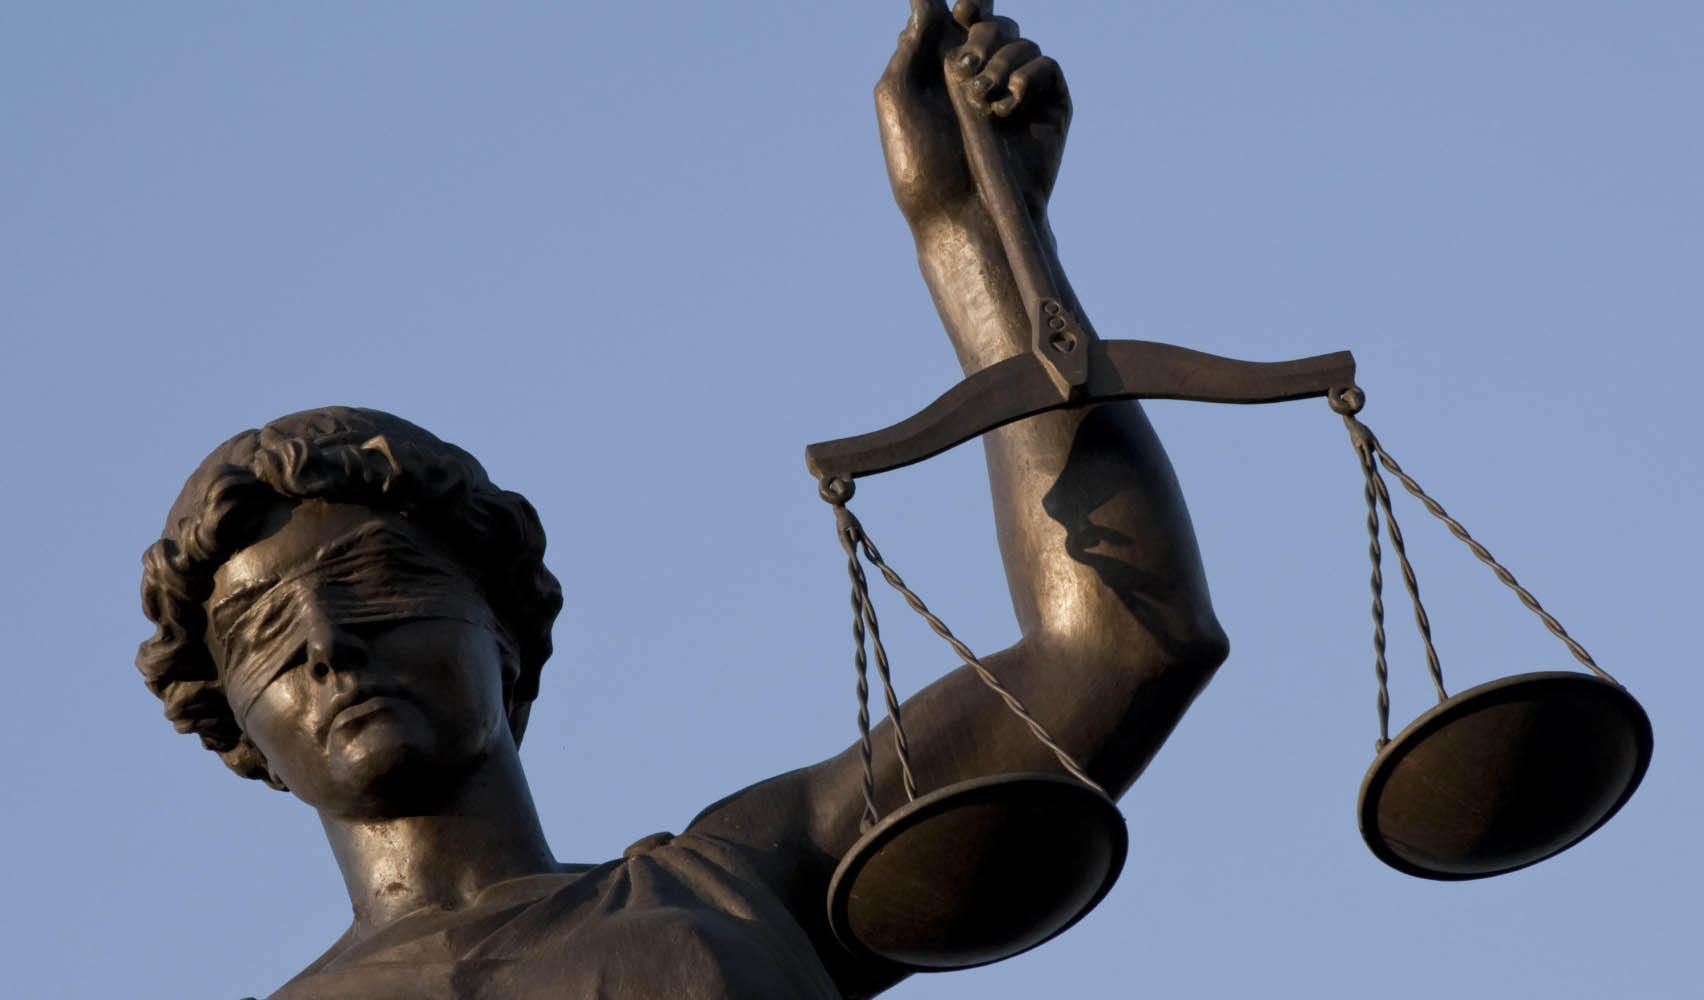 Against blue sky a Justice statue; Shutterstock ID 33202687; PO: aol; Job: production; Client: drone